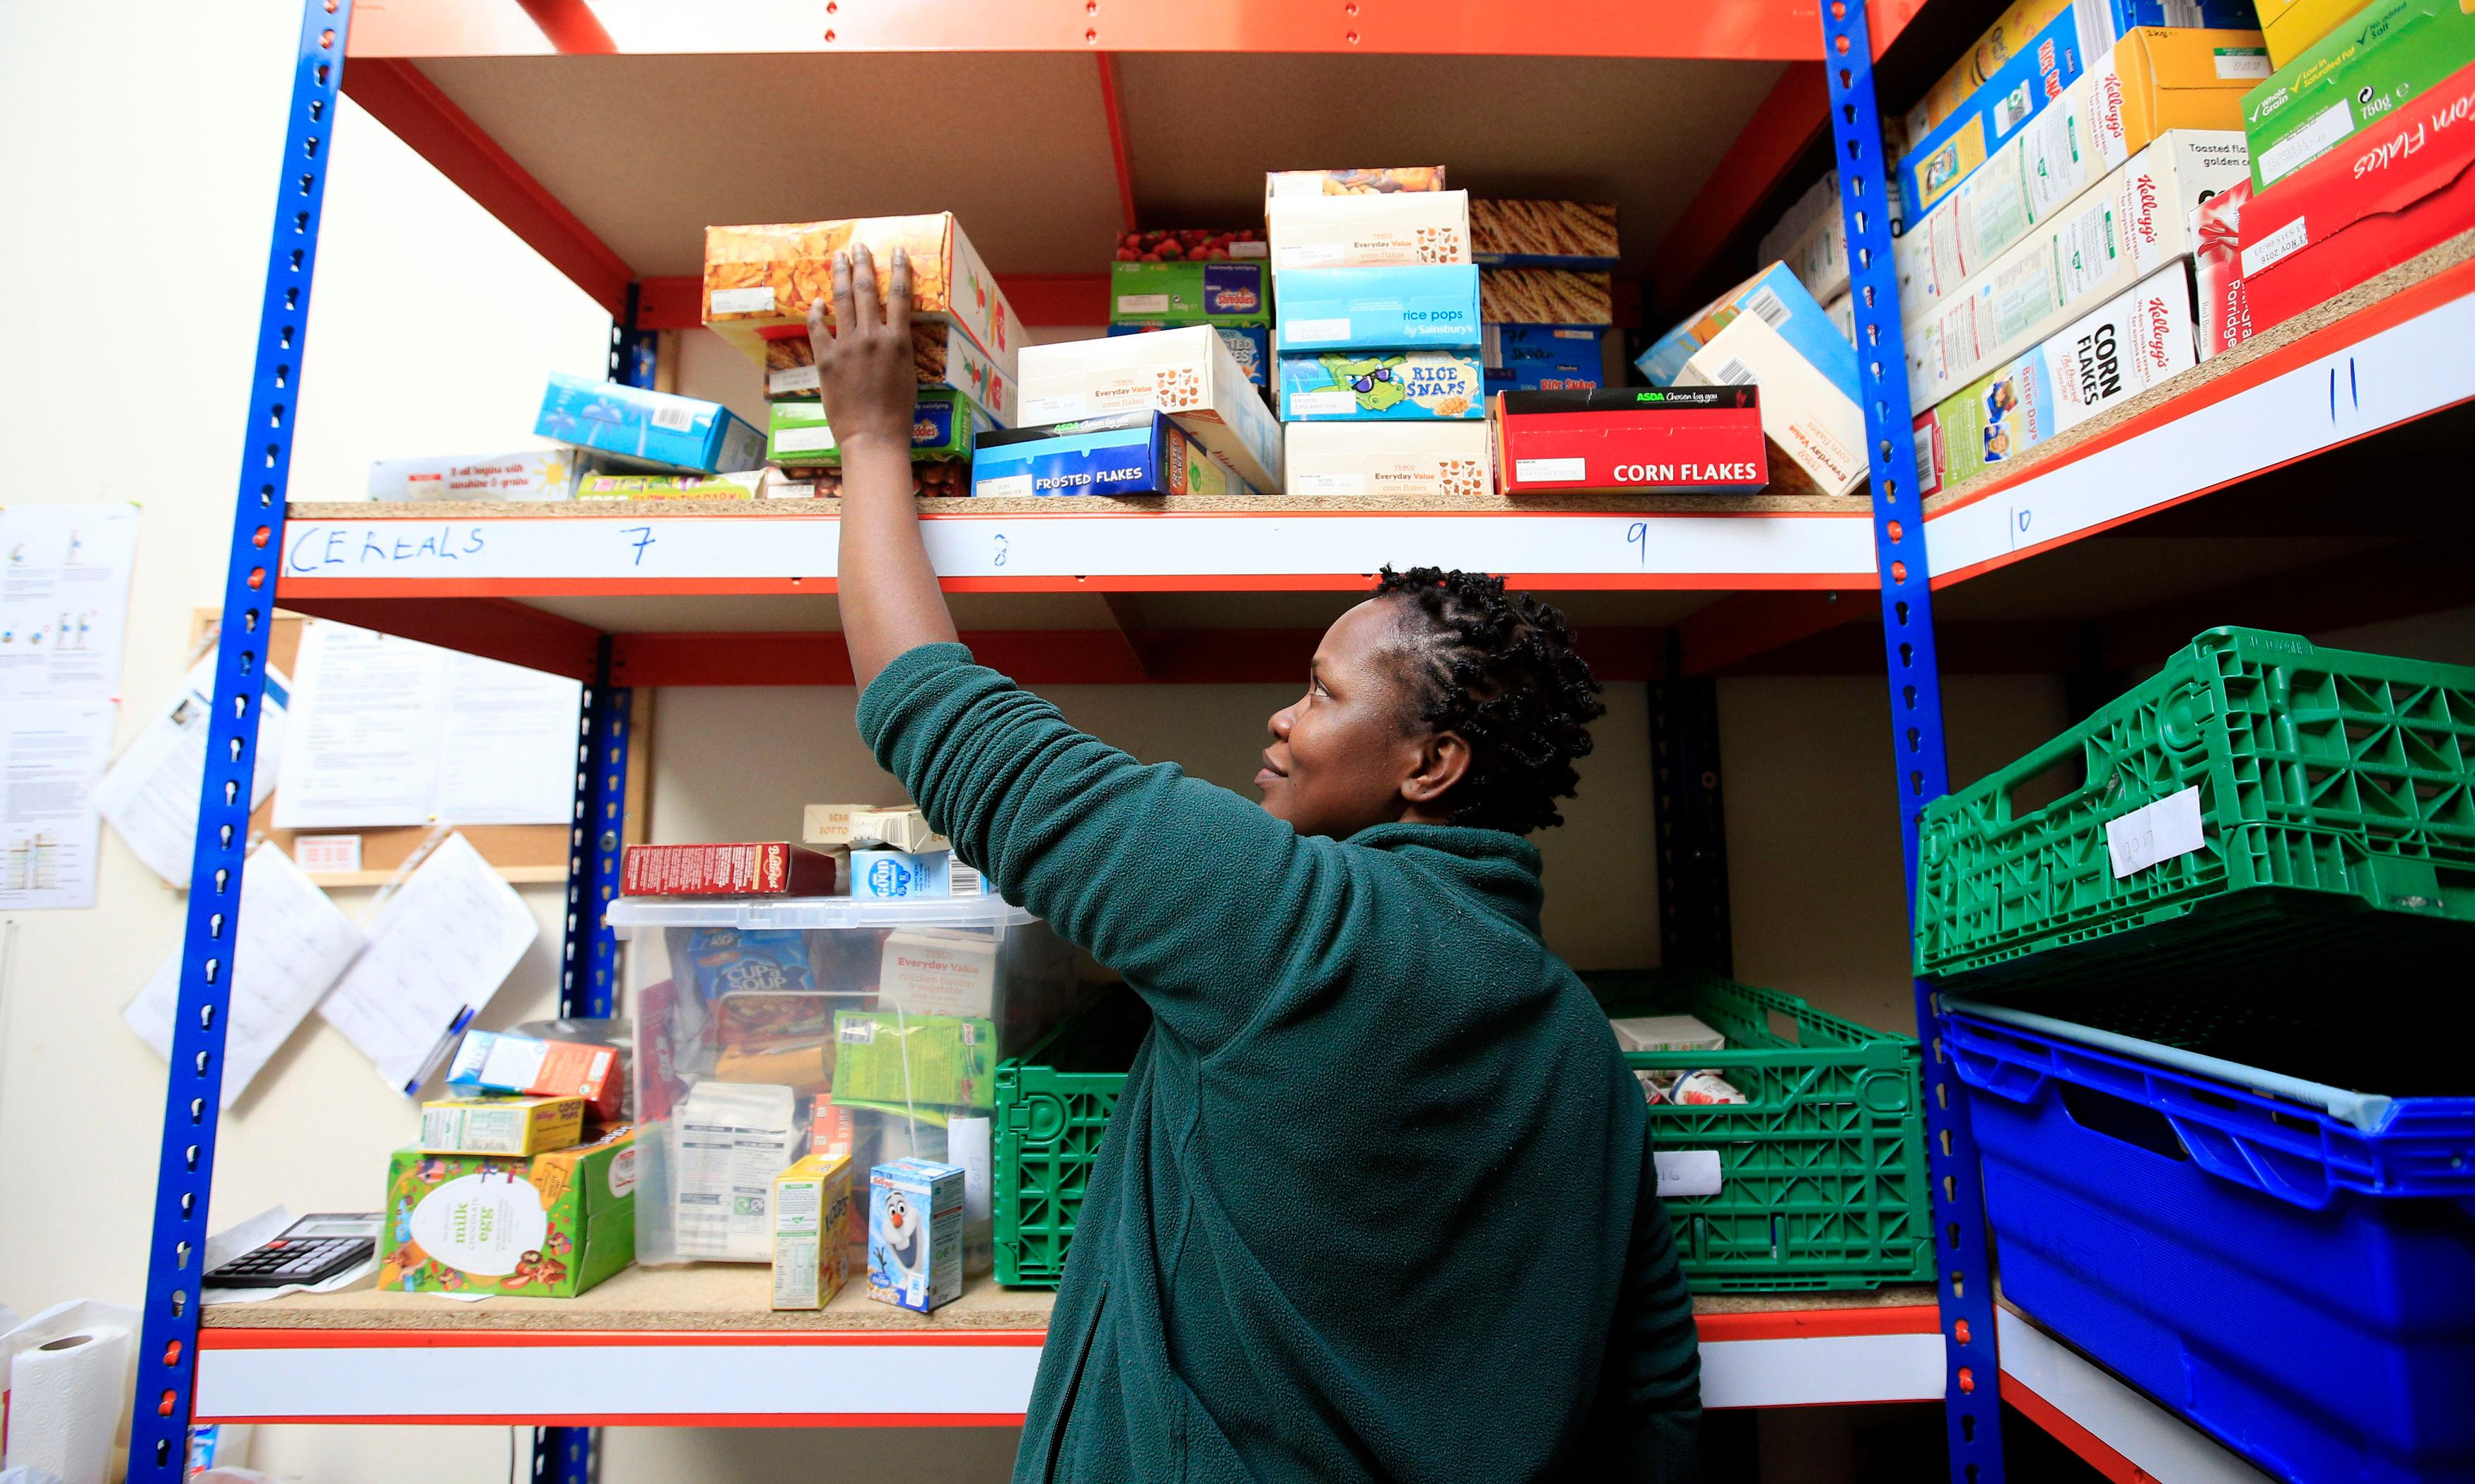 While Britain forces its disabled people to food banks, it is unfit for the 21st century